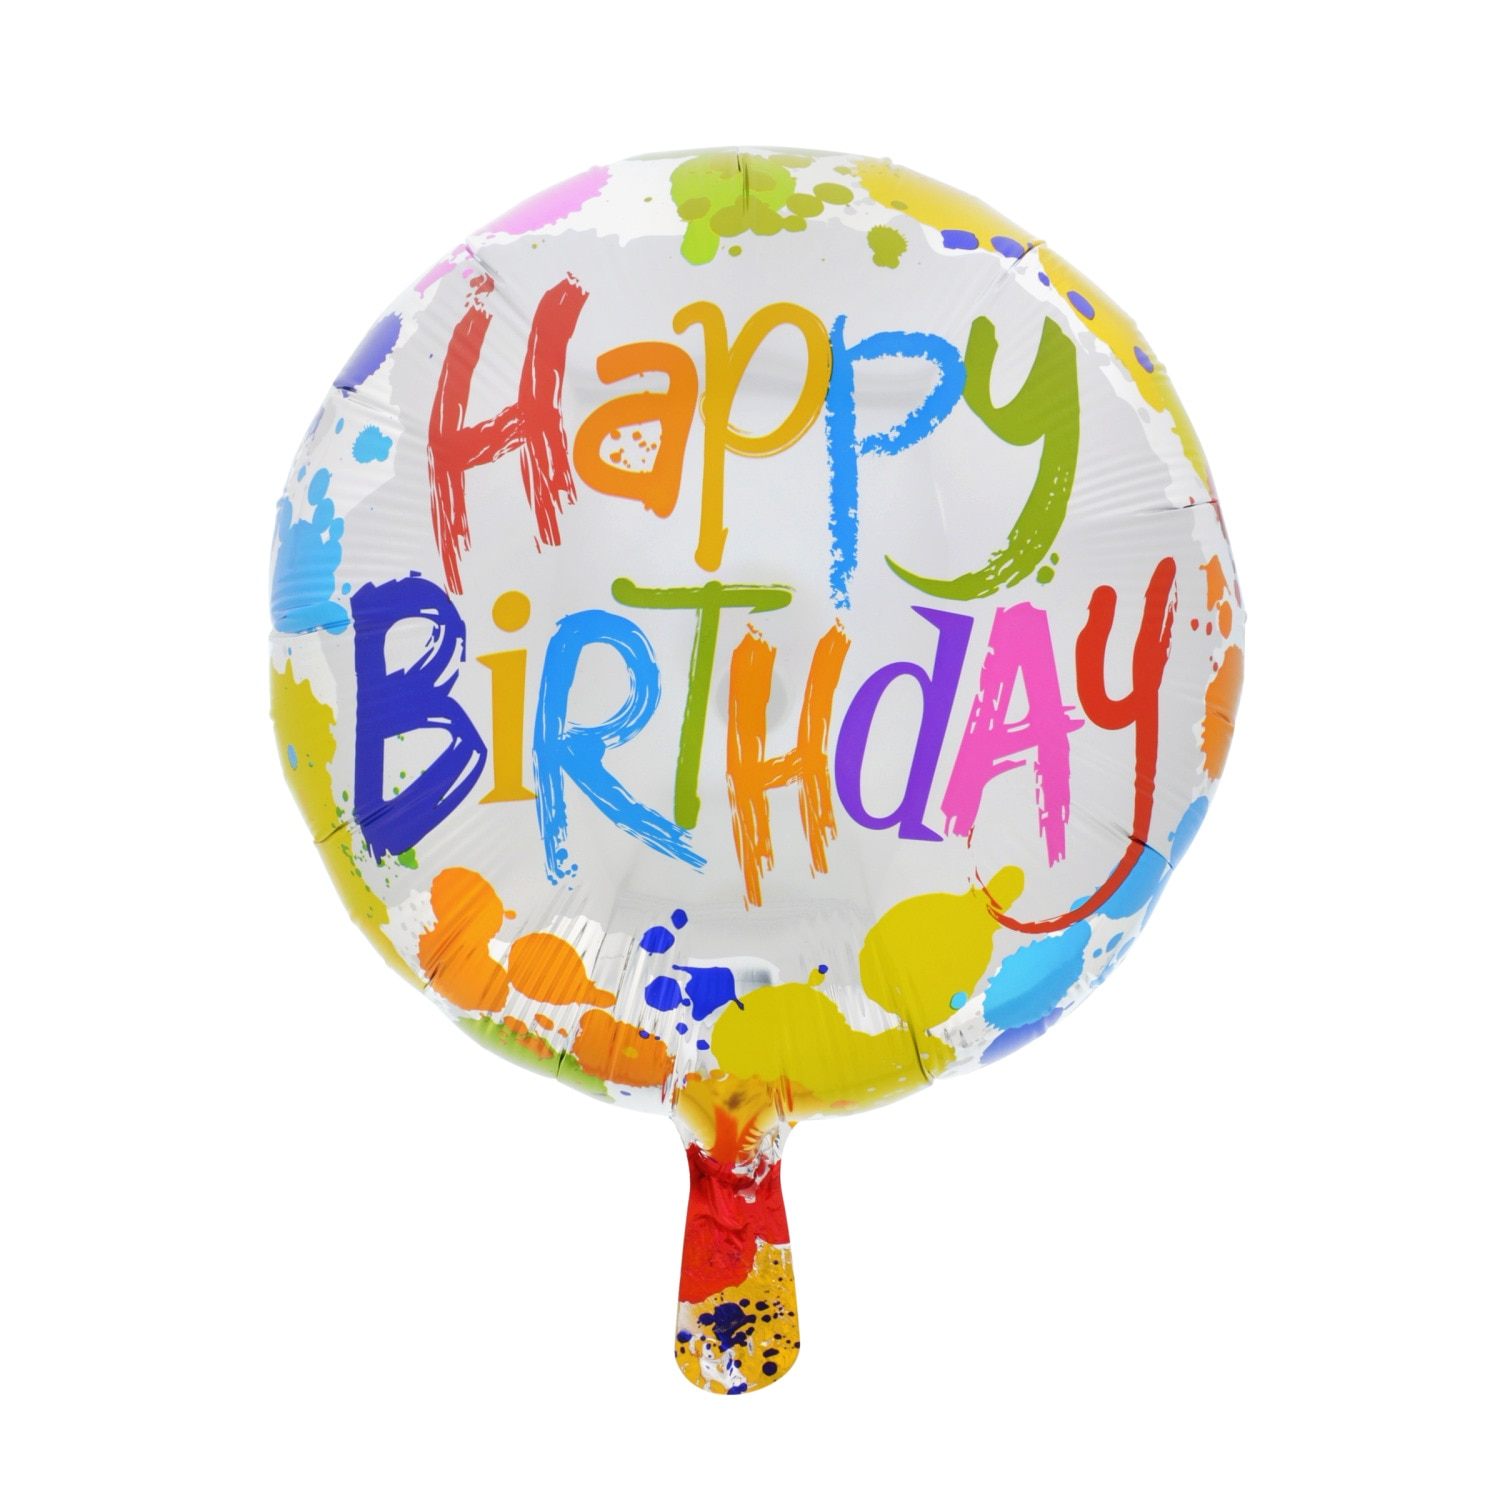 Tie Dye Happy Birthday Foil Balloons 18 In